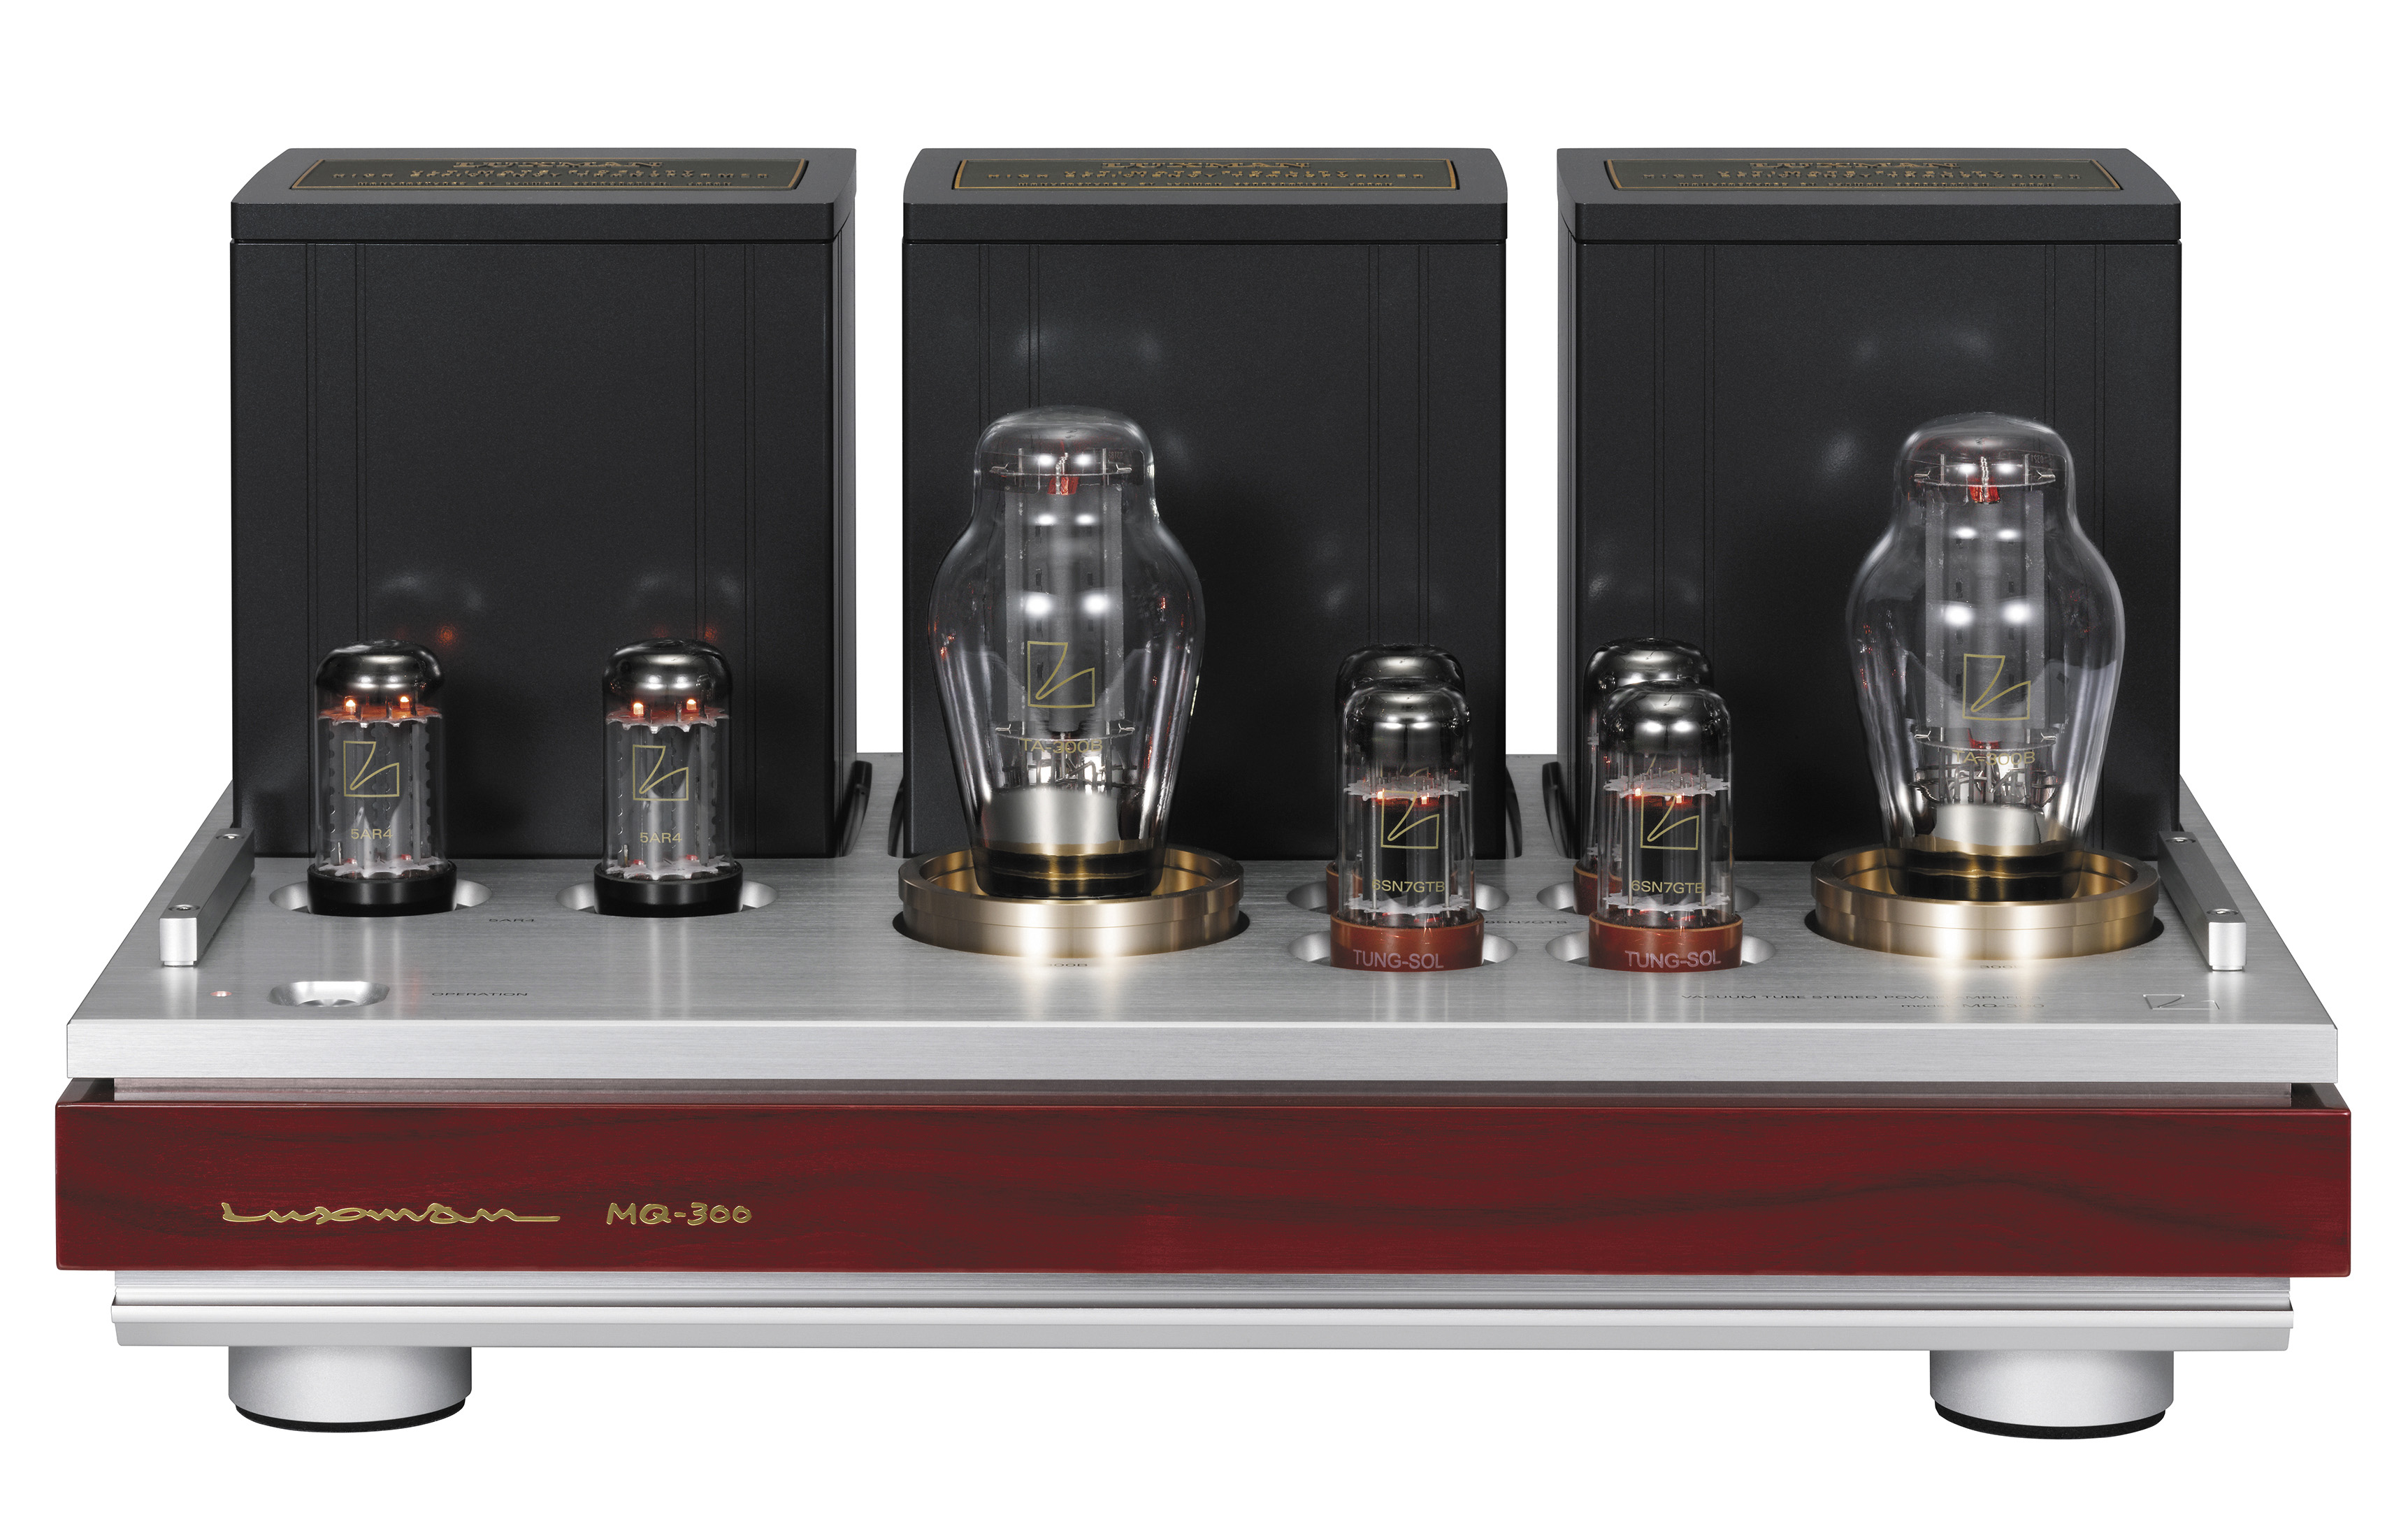 Mq 300 Vacuum Tube Amplifiers Products Luxman Seeking Higher Preamplifier Rectifier Circuit Board Srppin Integrated Circuits Gallery